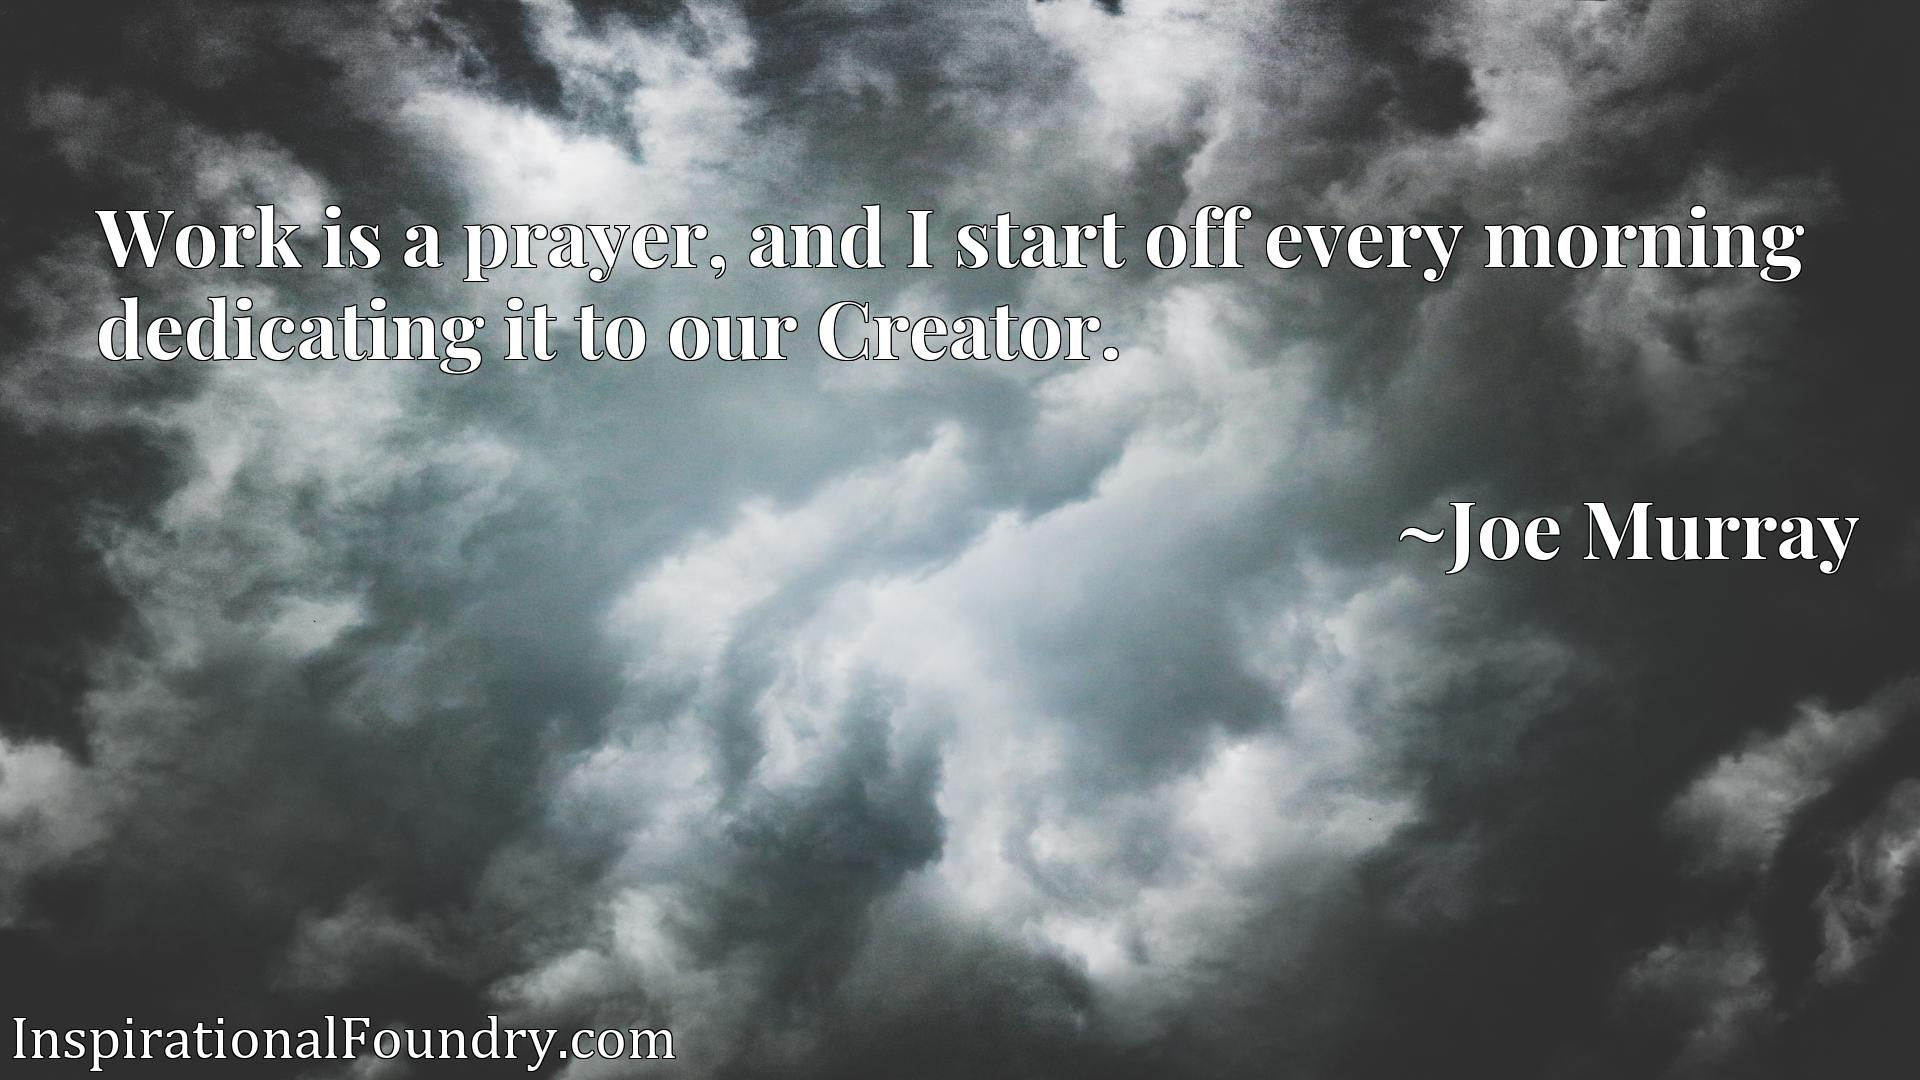 Quote Picture :Work is a prayer, and I start off every morning dedicating it to our Creator.